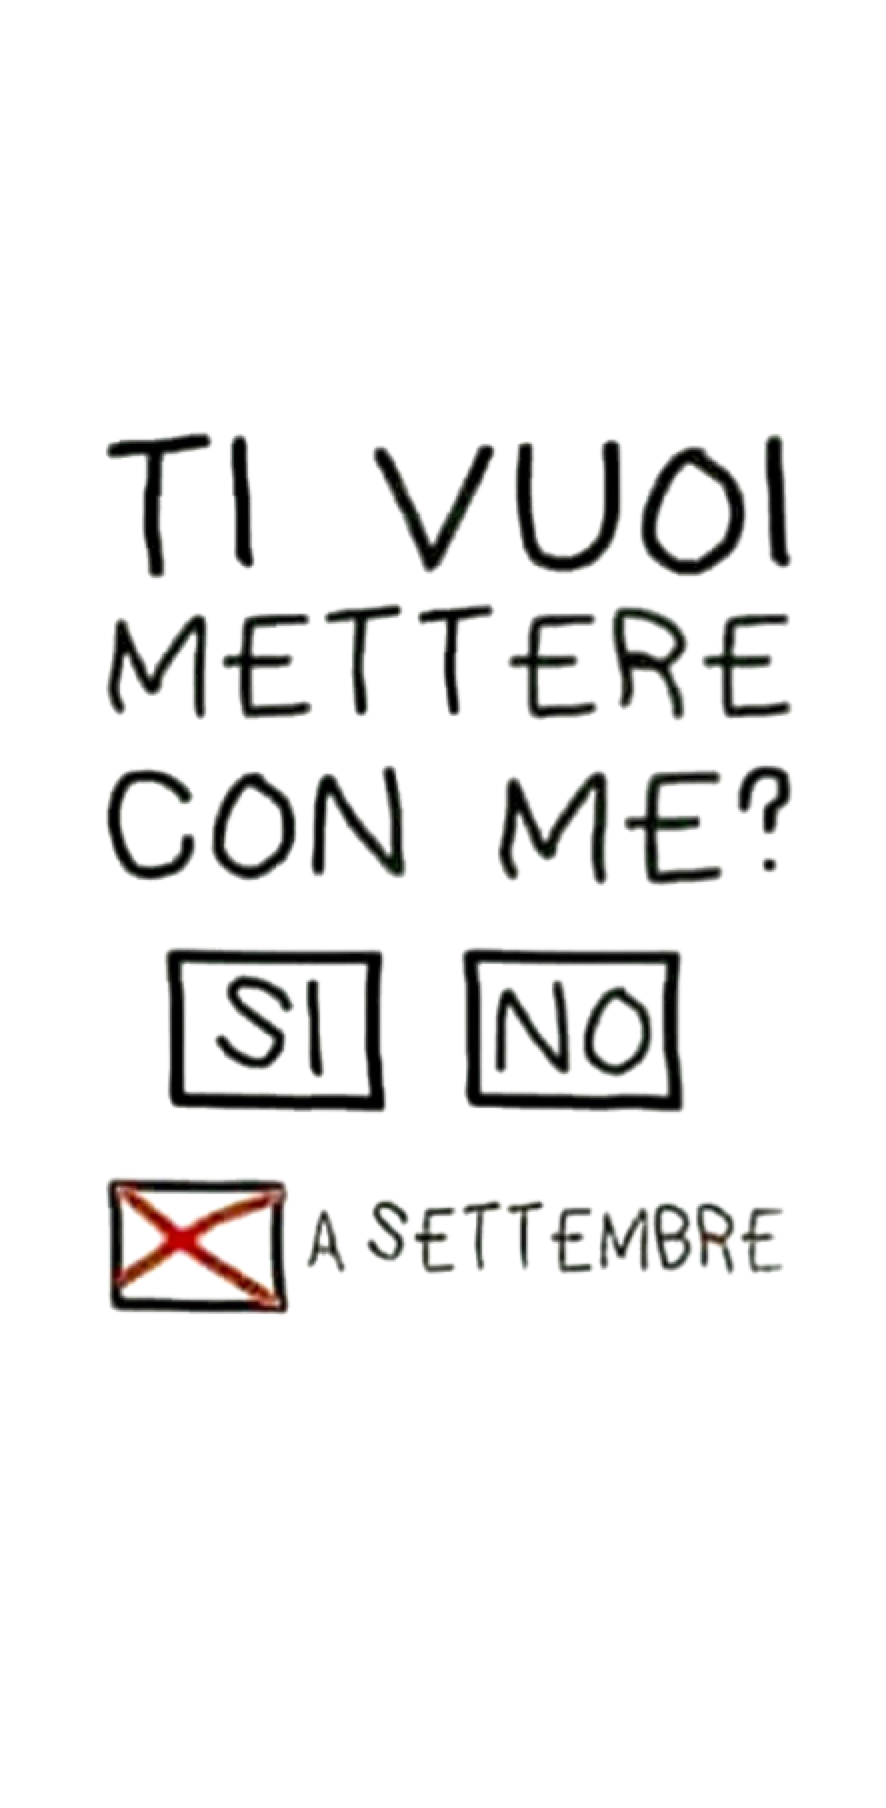 cover #aSETTEMBRE